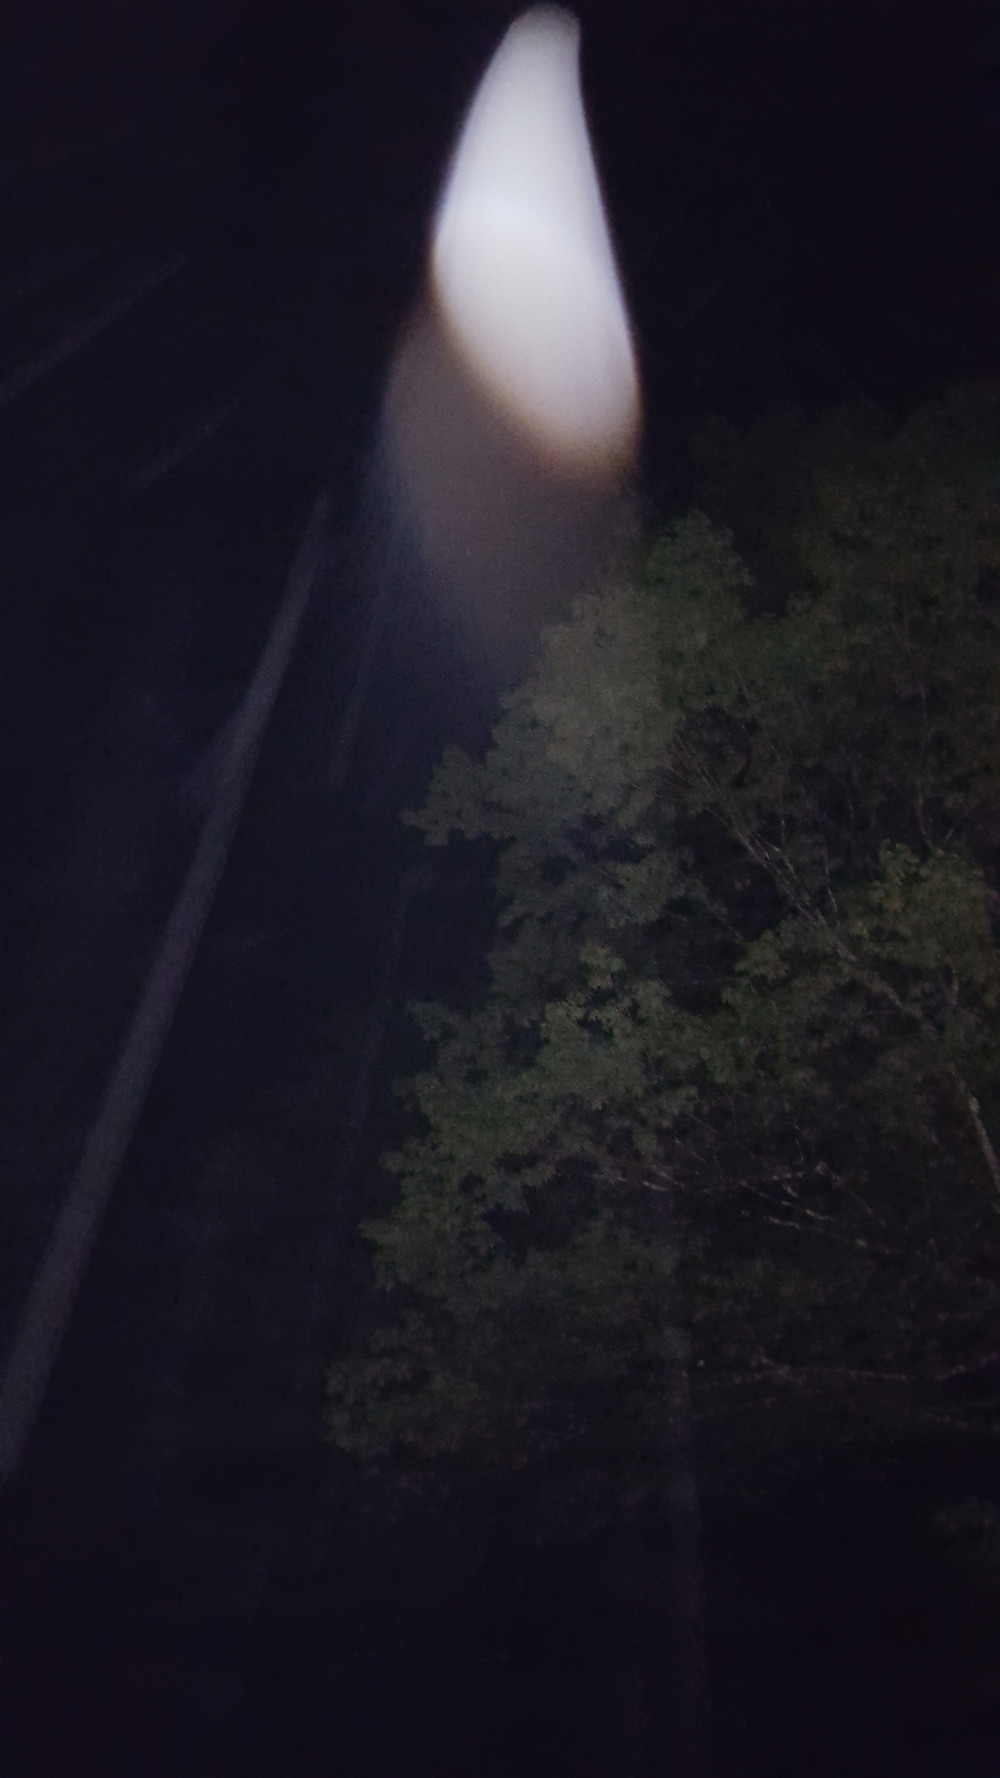 Nighttime. Elongated yellowish-white teardrop with brownish shadow spotlight beamimg down from the sky over the trees.